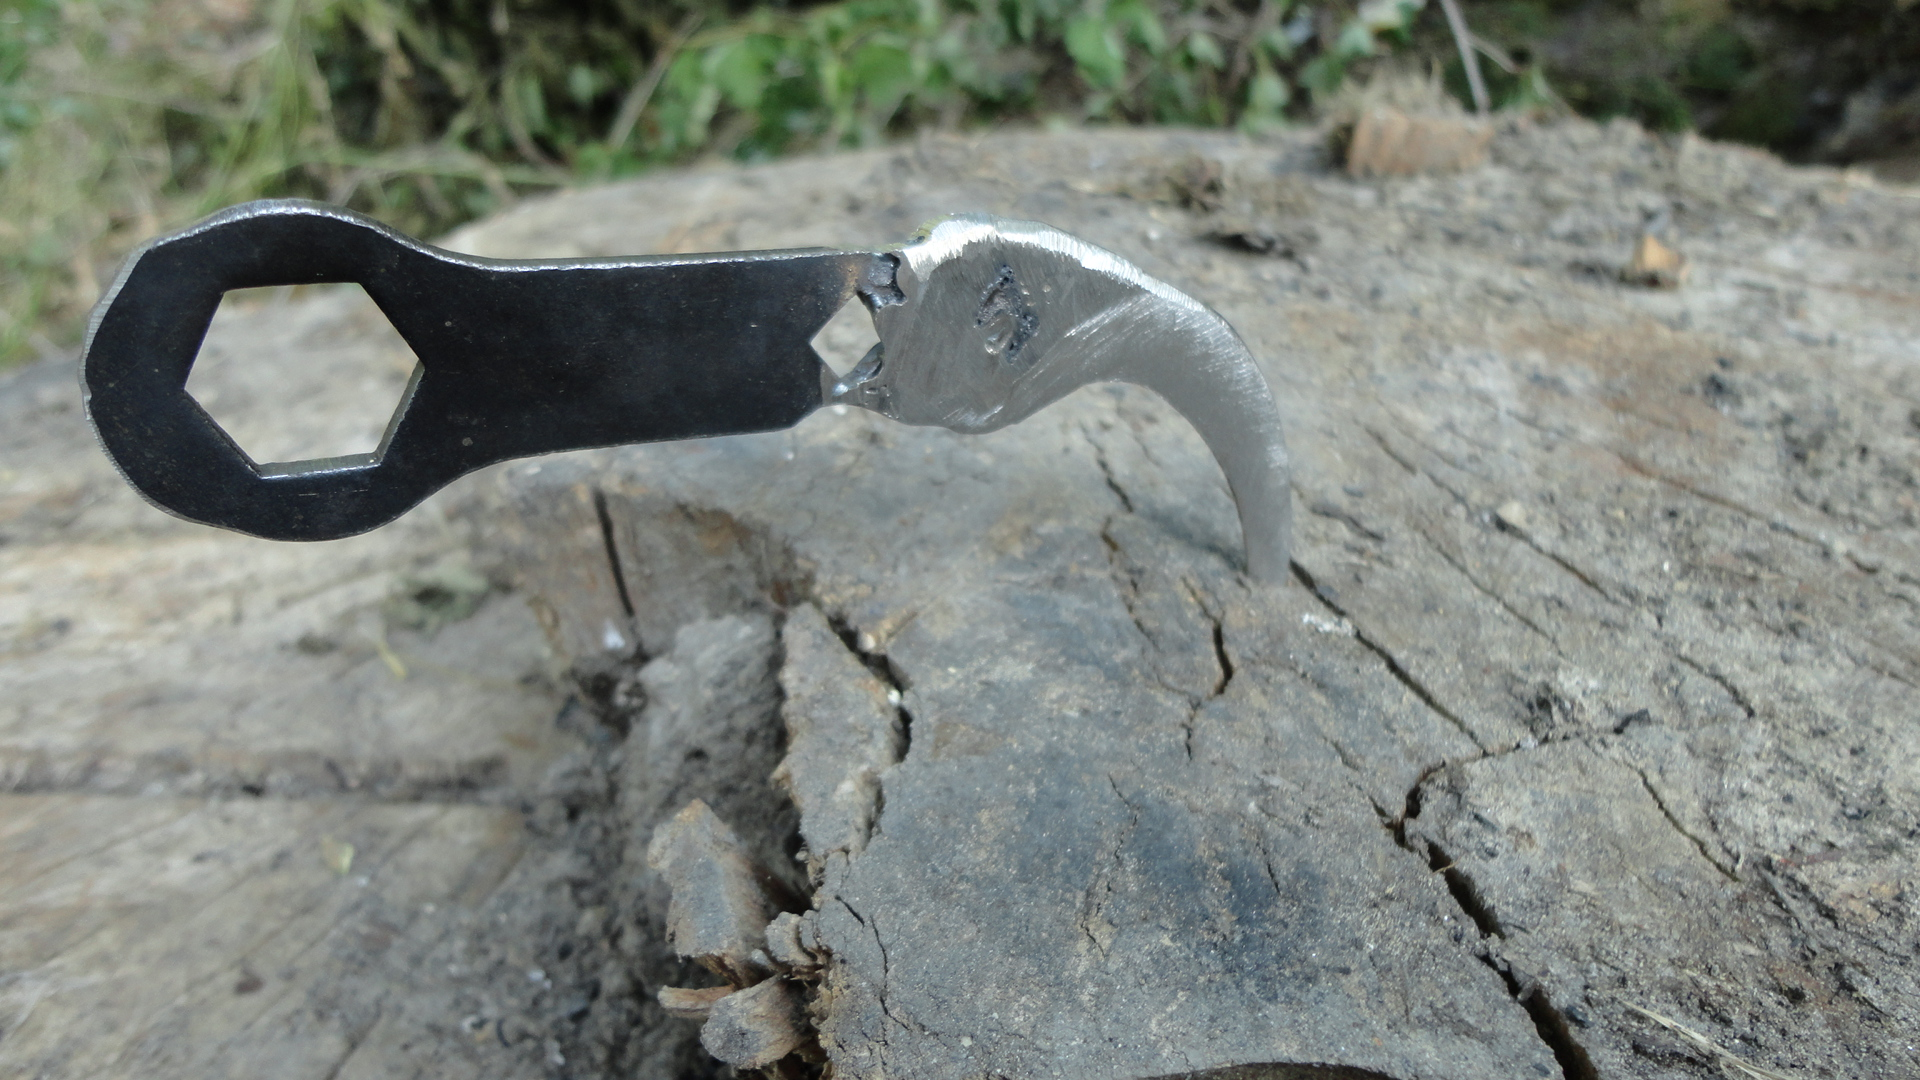 Karambit  Knife from a hand pruners + broken bicycle tool